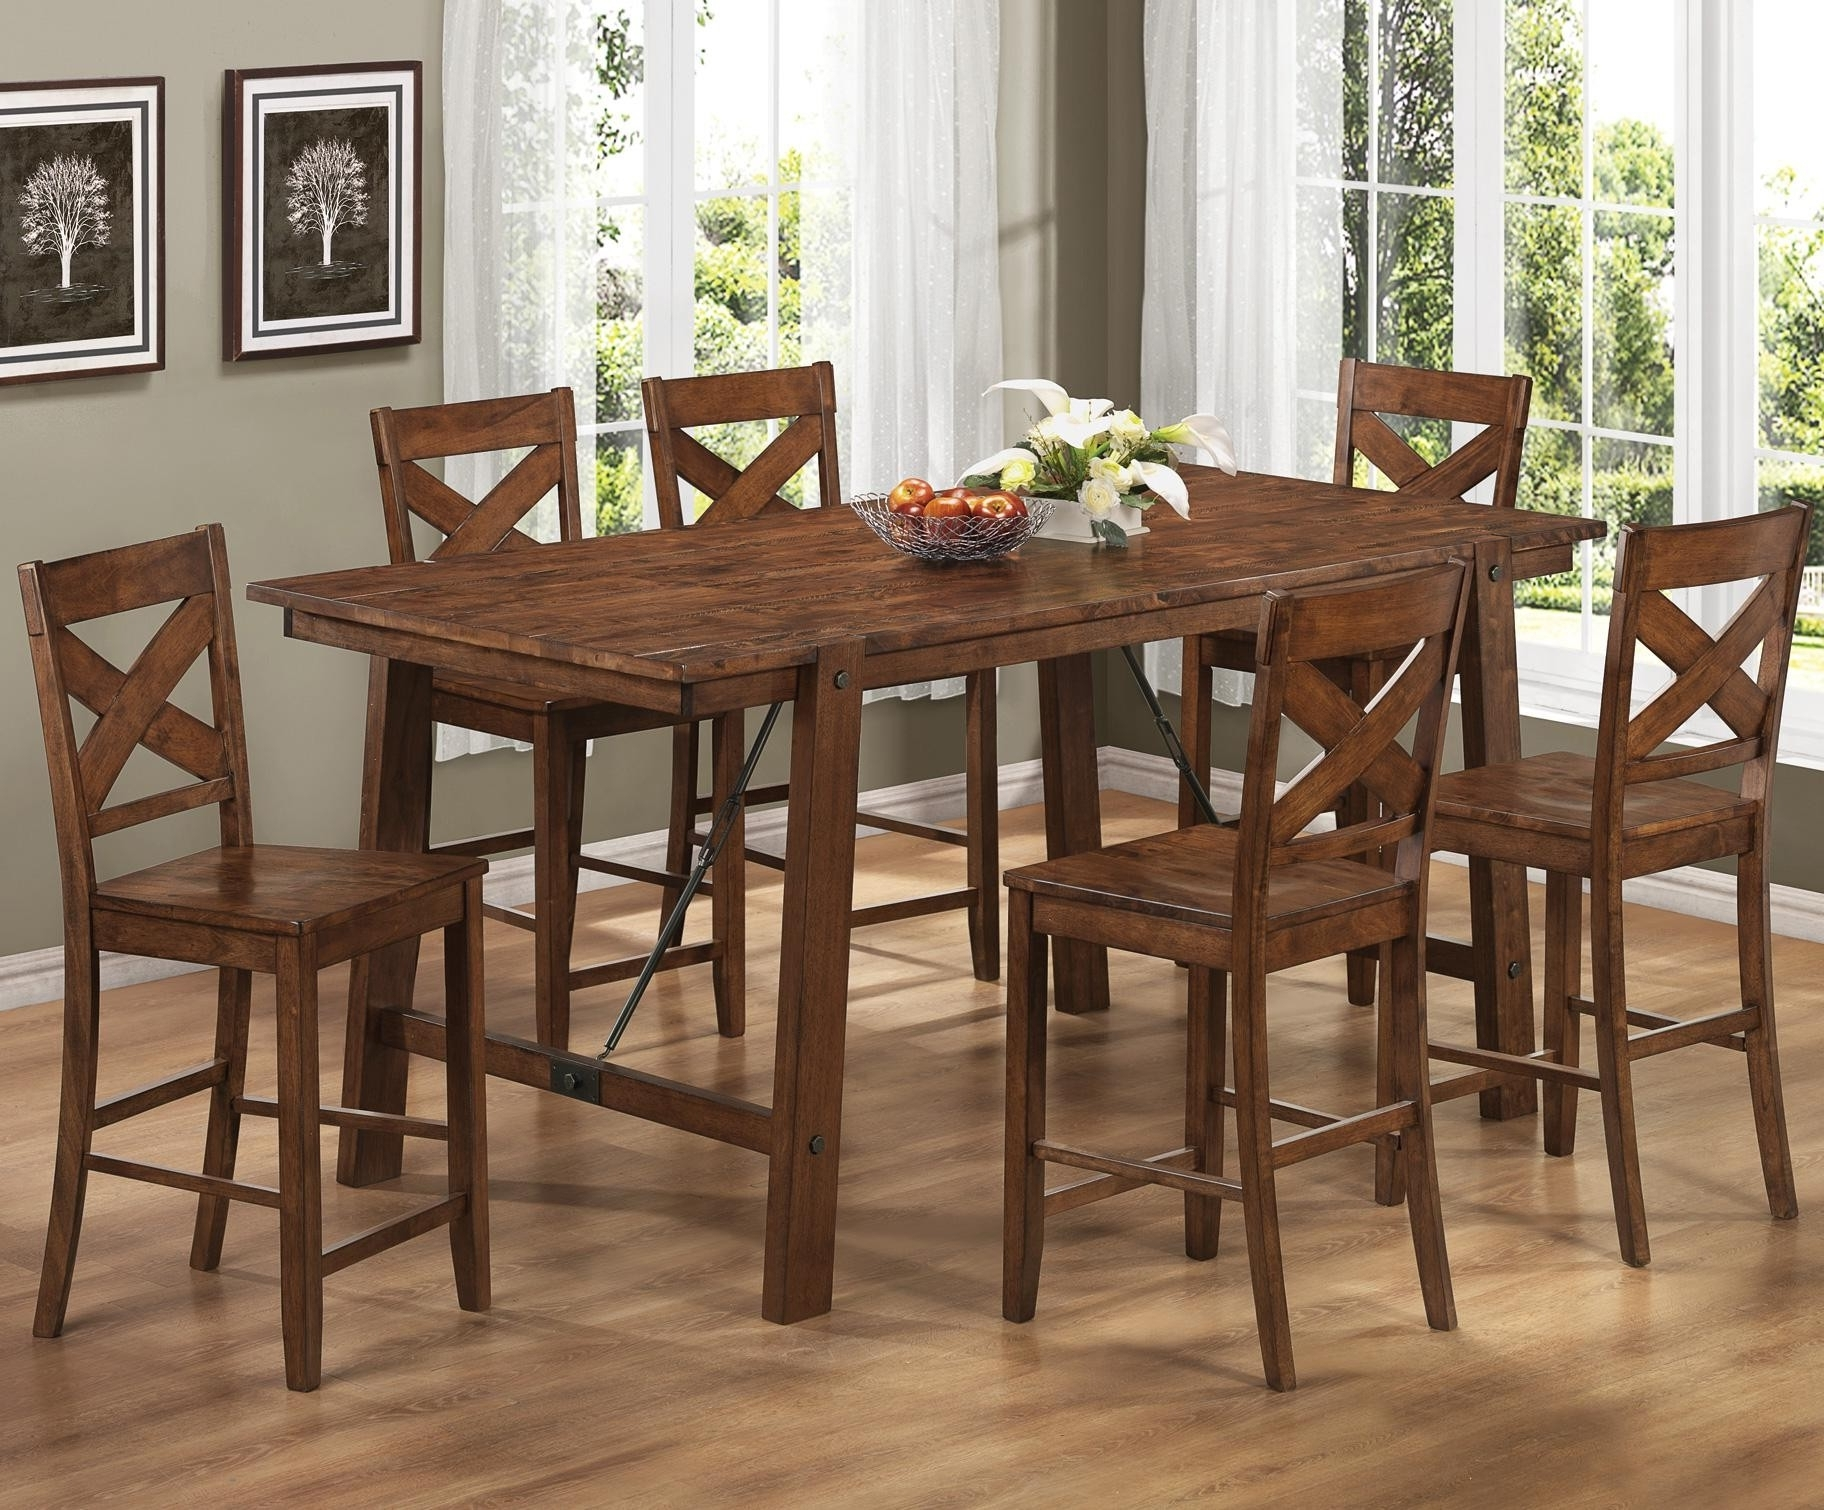 Dining Tables And Six Chairs with Trendy High Top Kitchen Table Sets Homesfeed, Kitchen Tables And Chairs